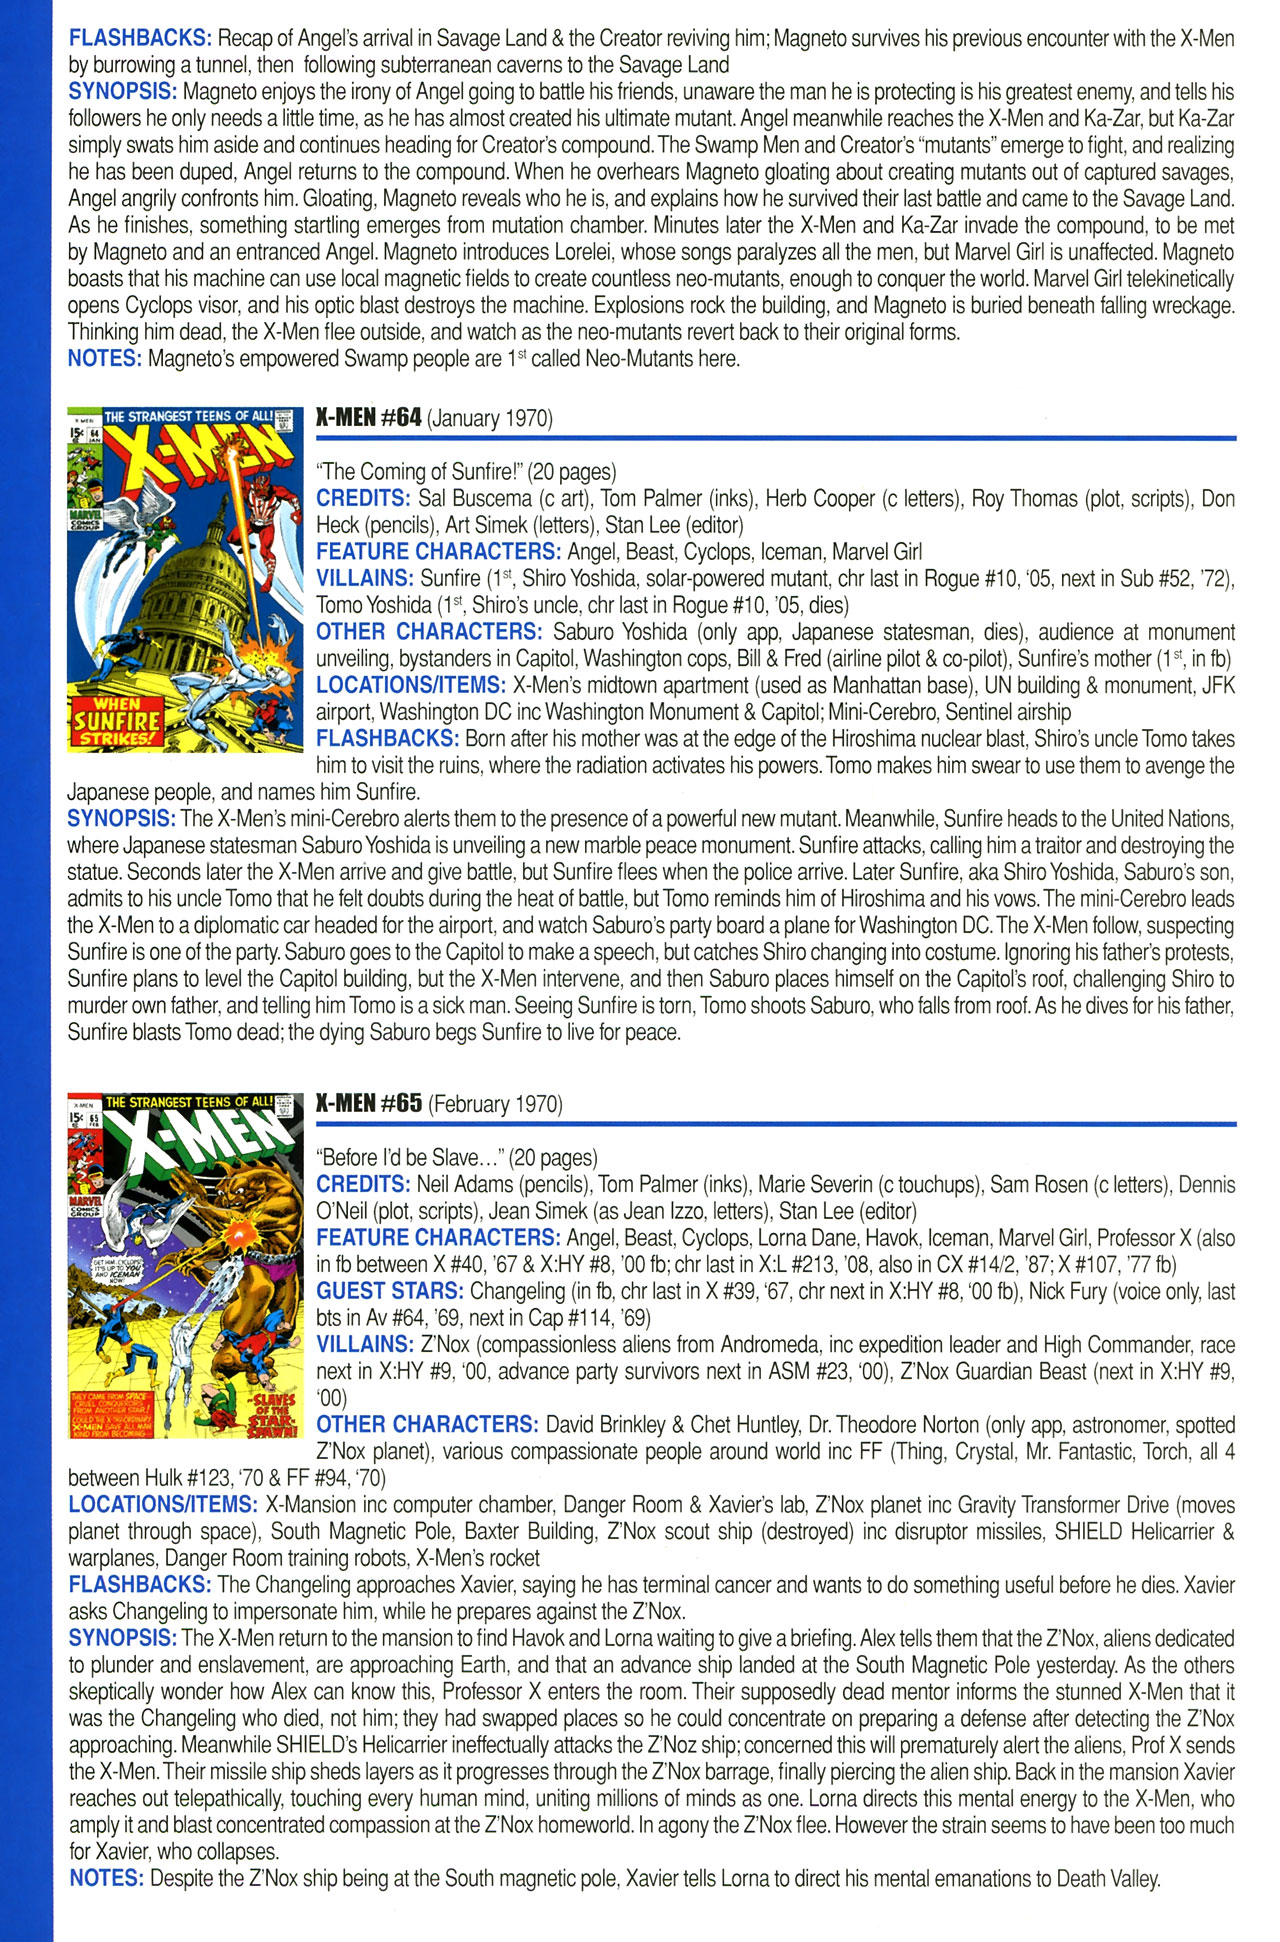 Read online Official Index to the Marvel Universe comic -  Issue #2 - 52